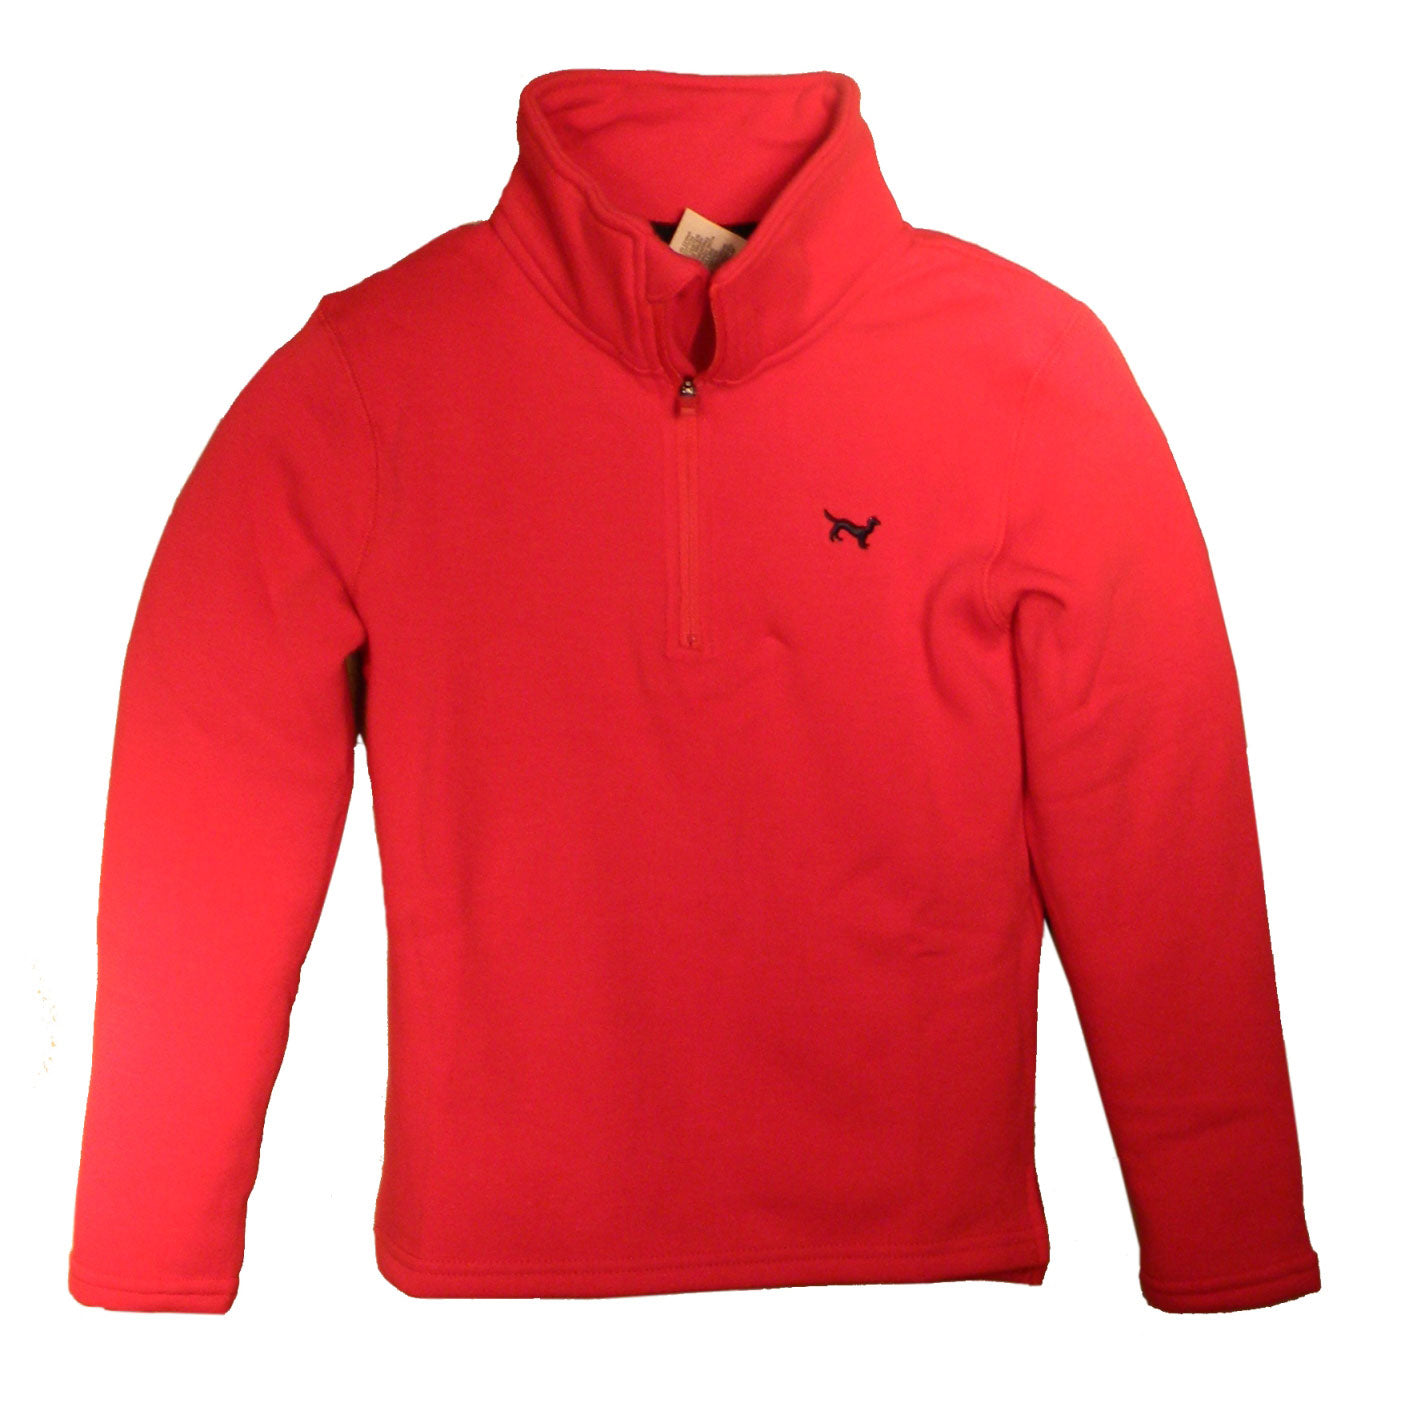 Boys' 1/4 Zip Sweater by Jack Thomas